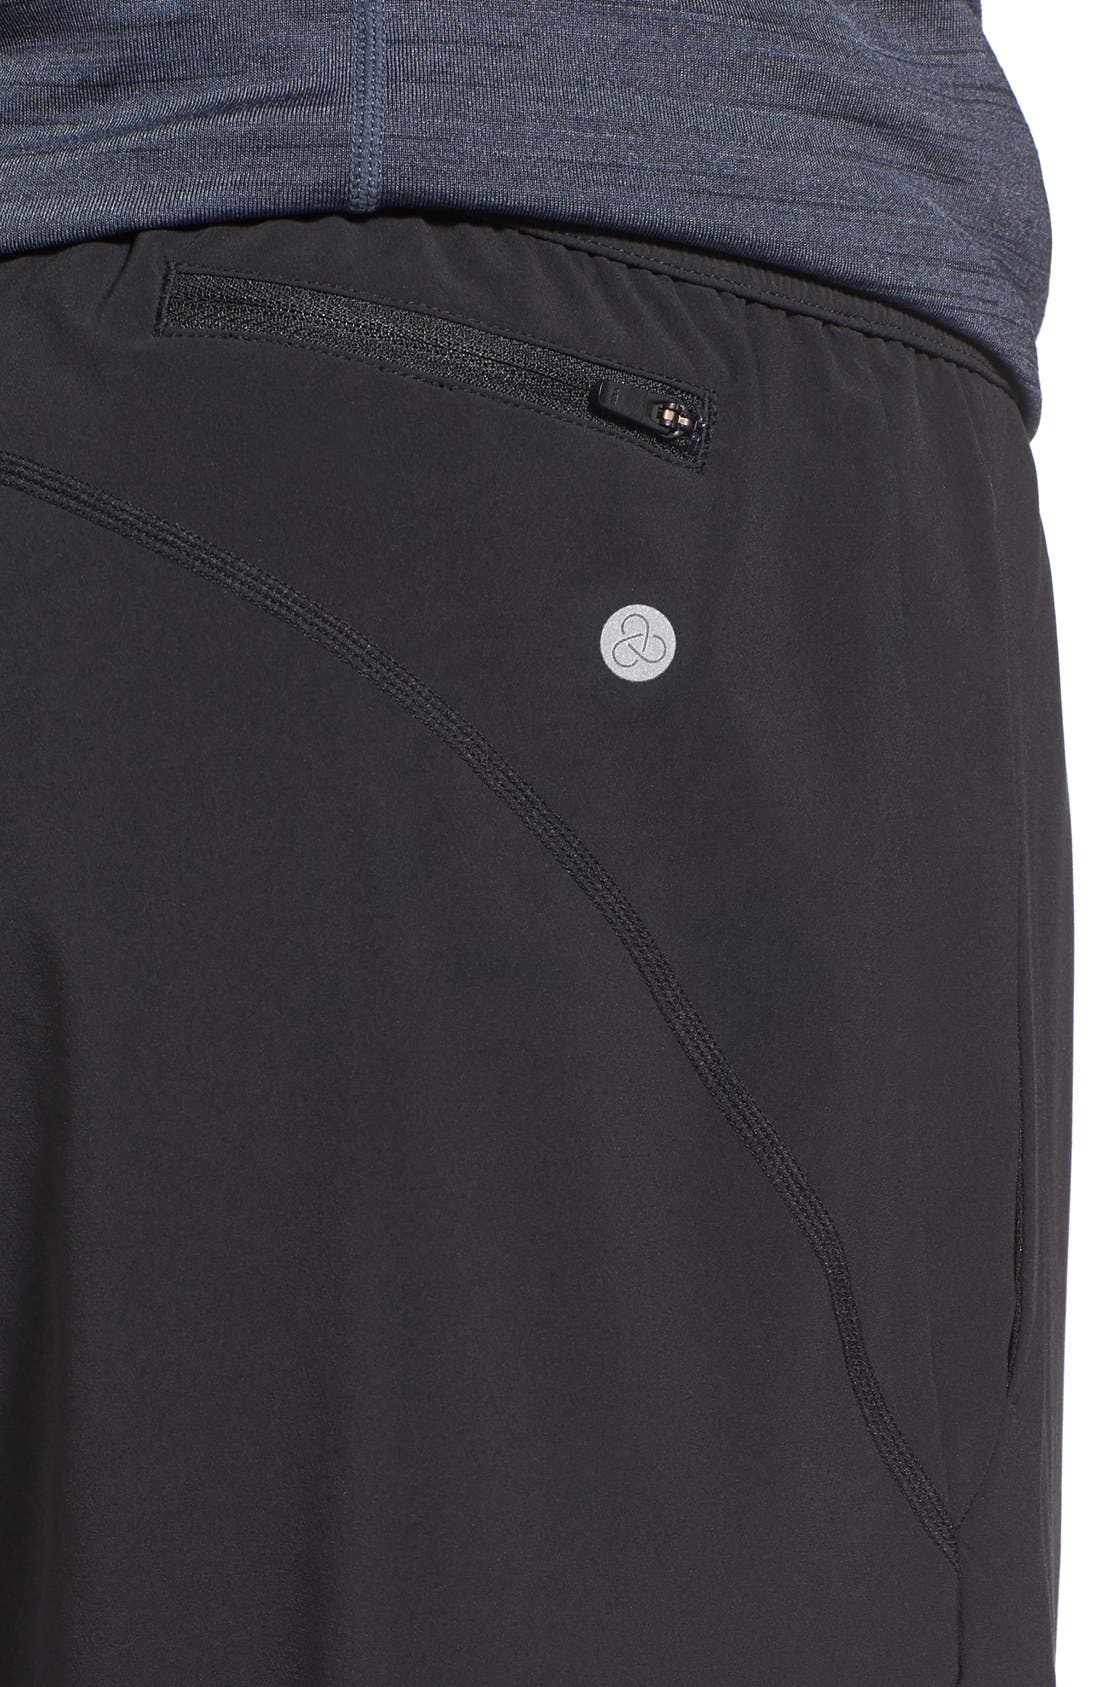 Graphite Tapered Athletic Pants,                             Alternate thumbnail 5, color,                             001